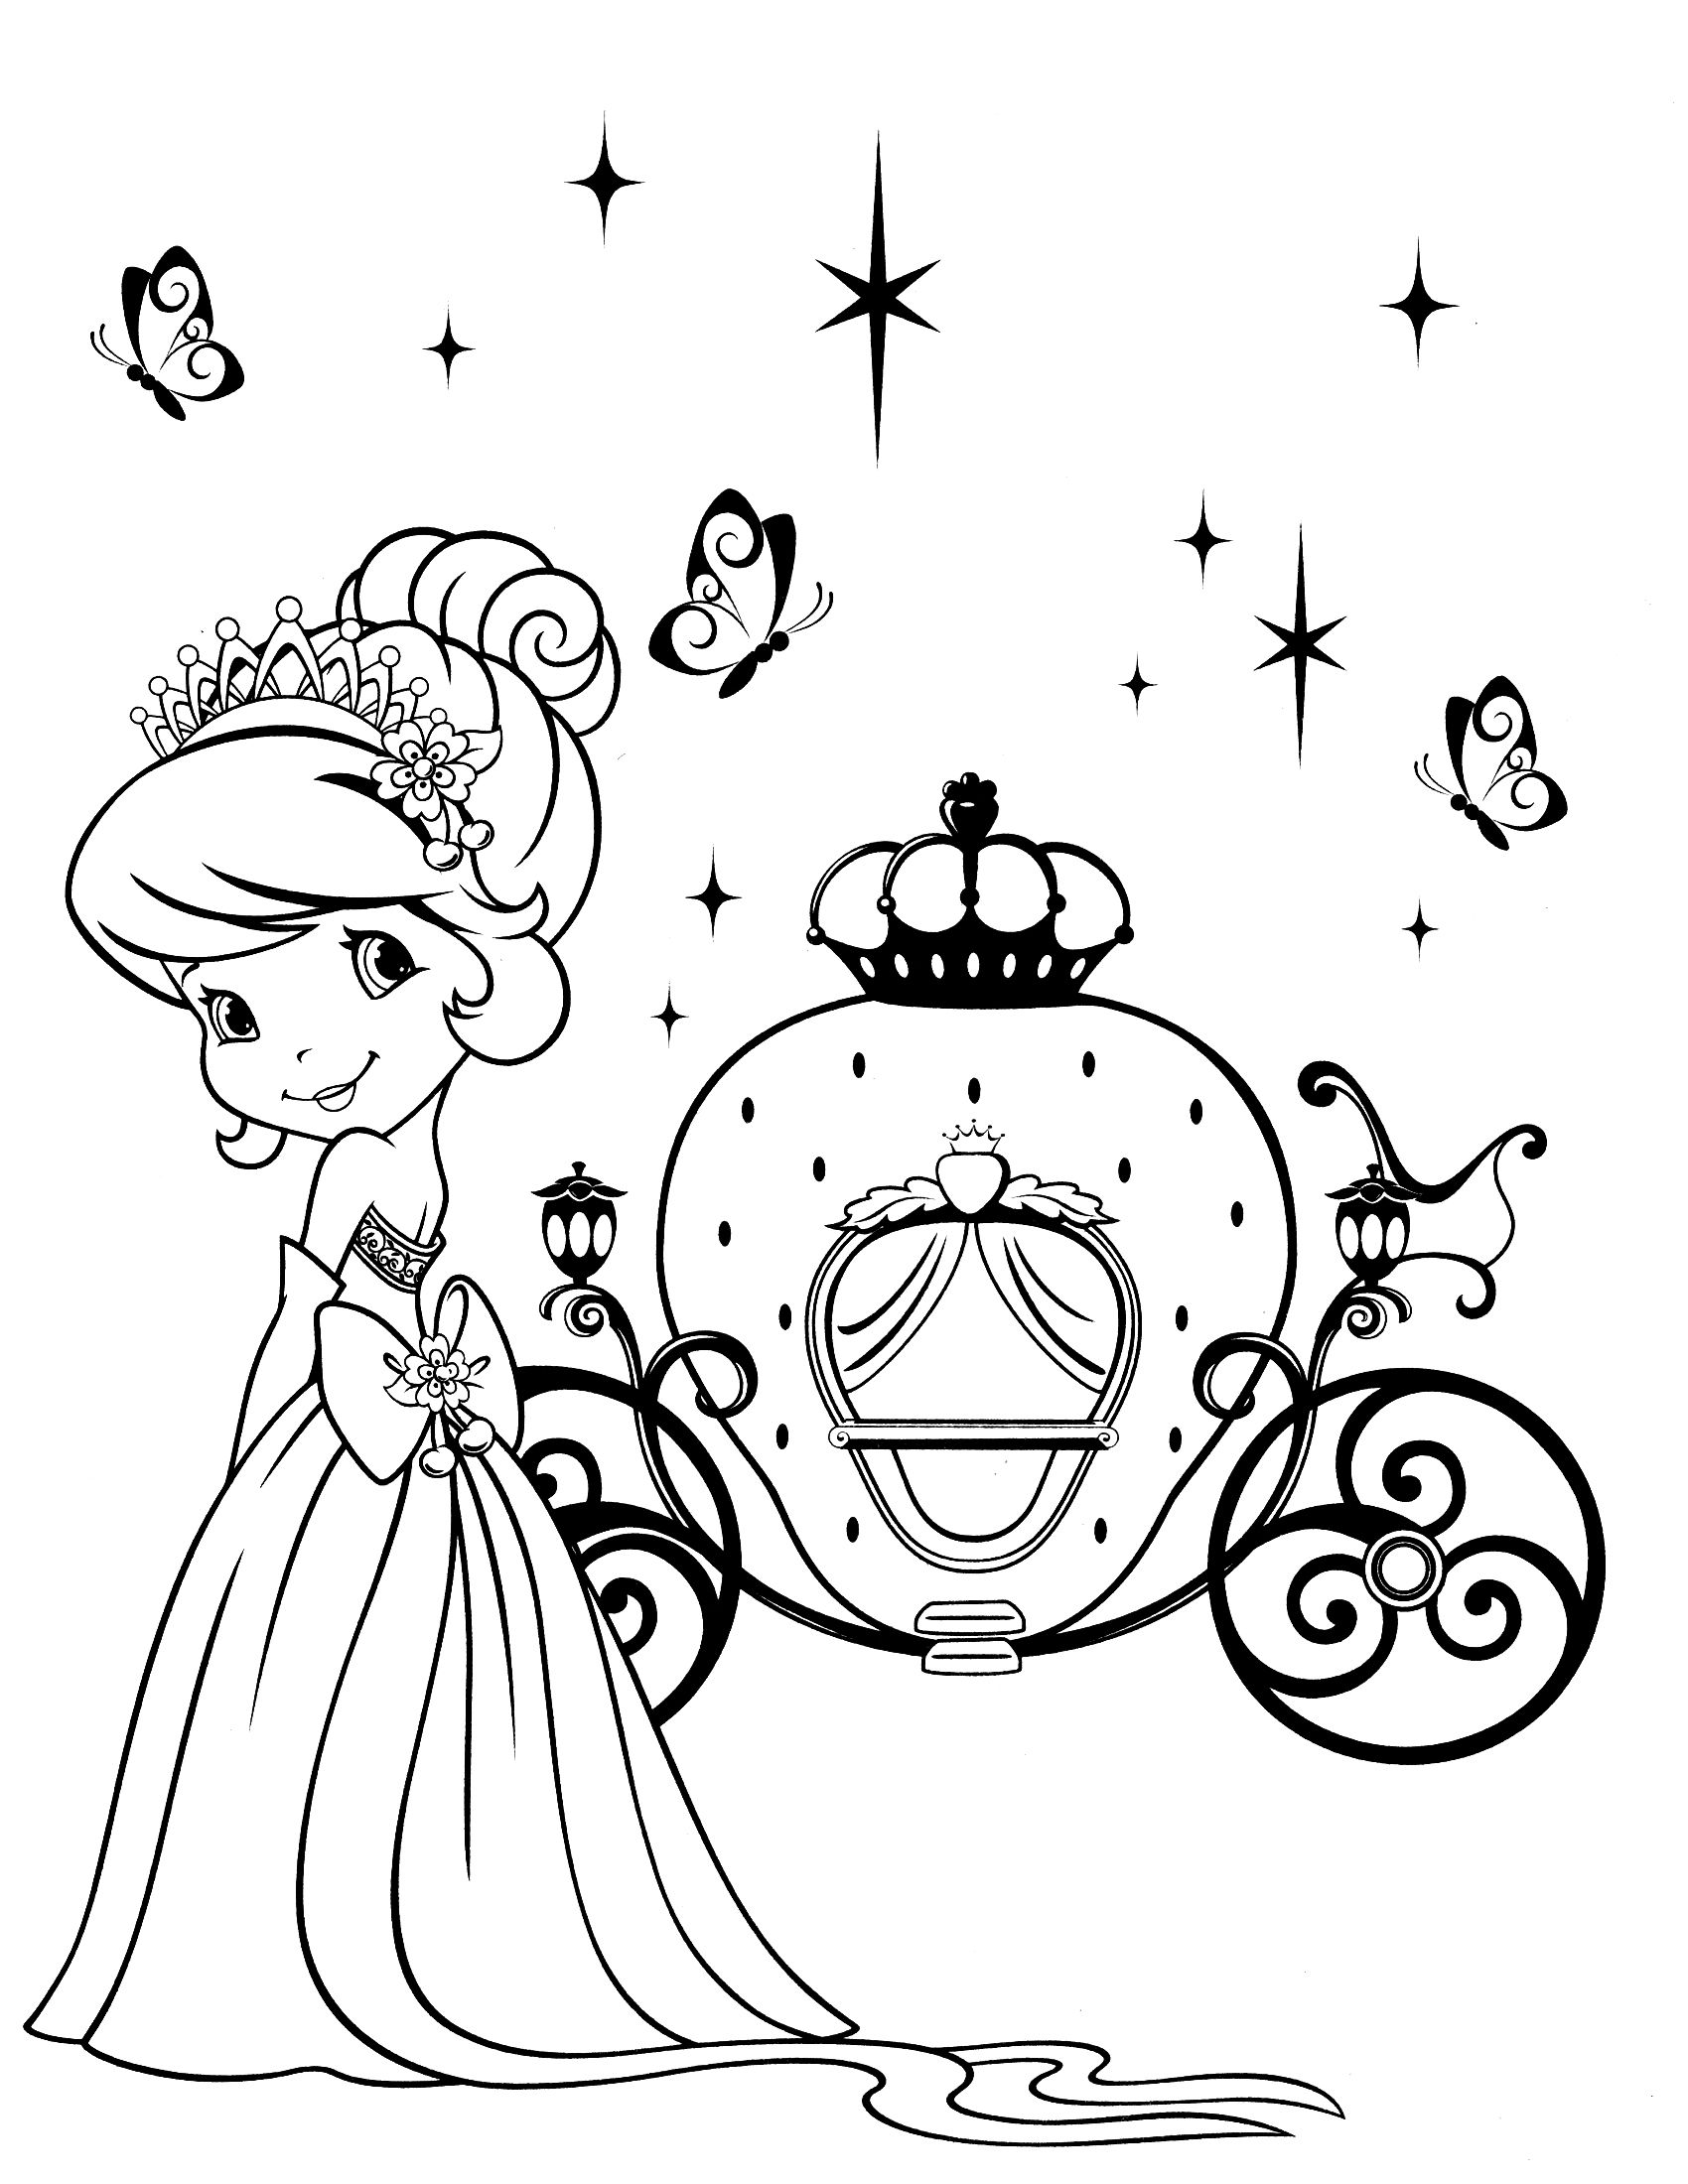 strawberry shortcake coloring page | Disenos | Pinterest | Adult ...